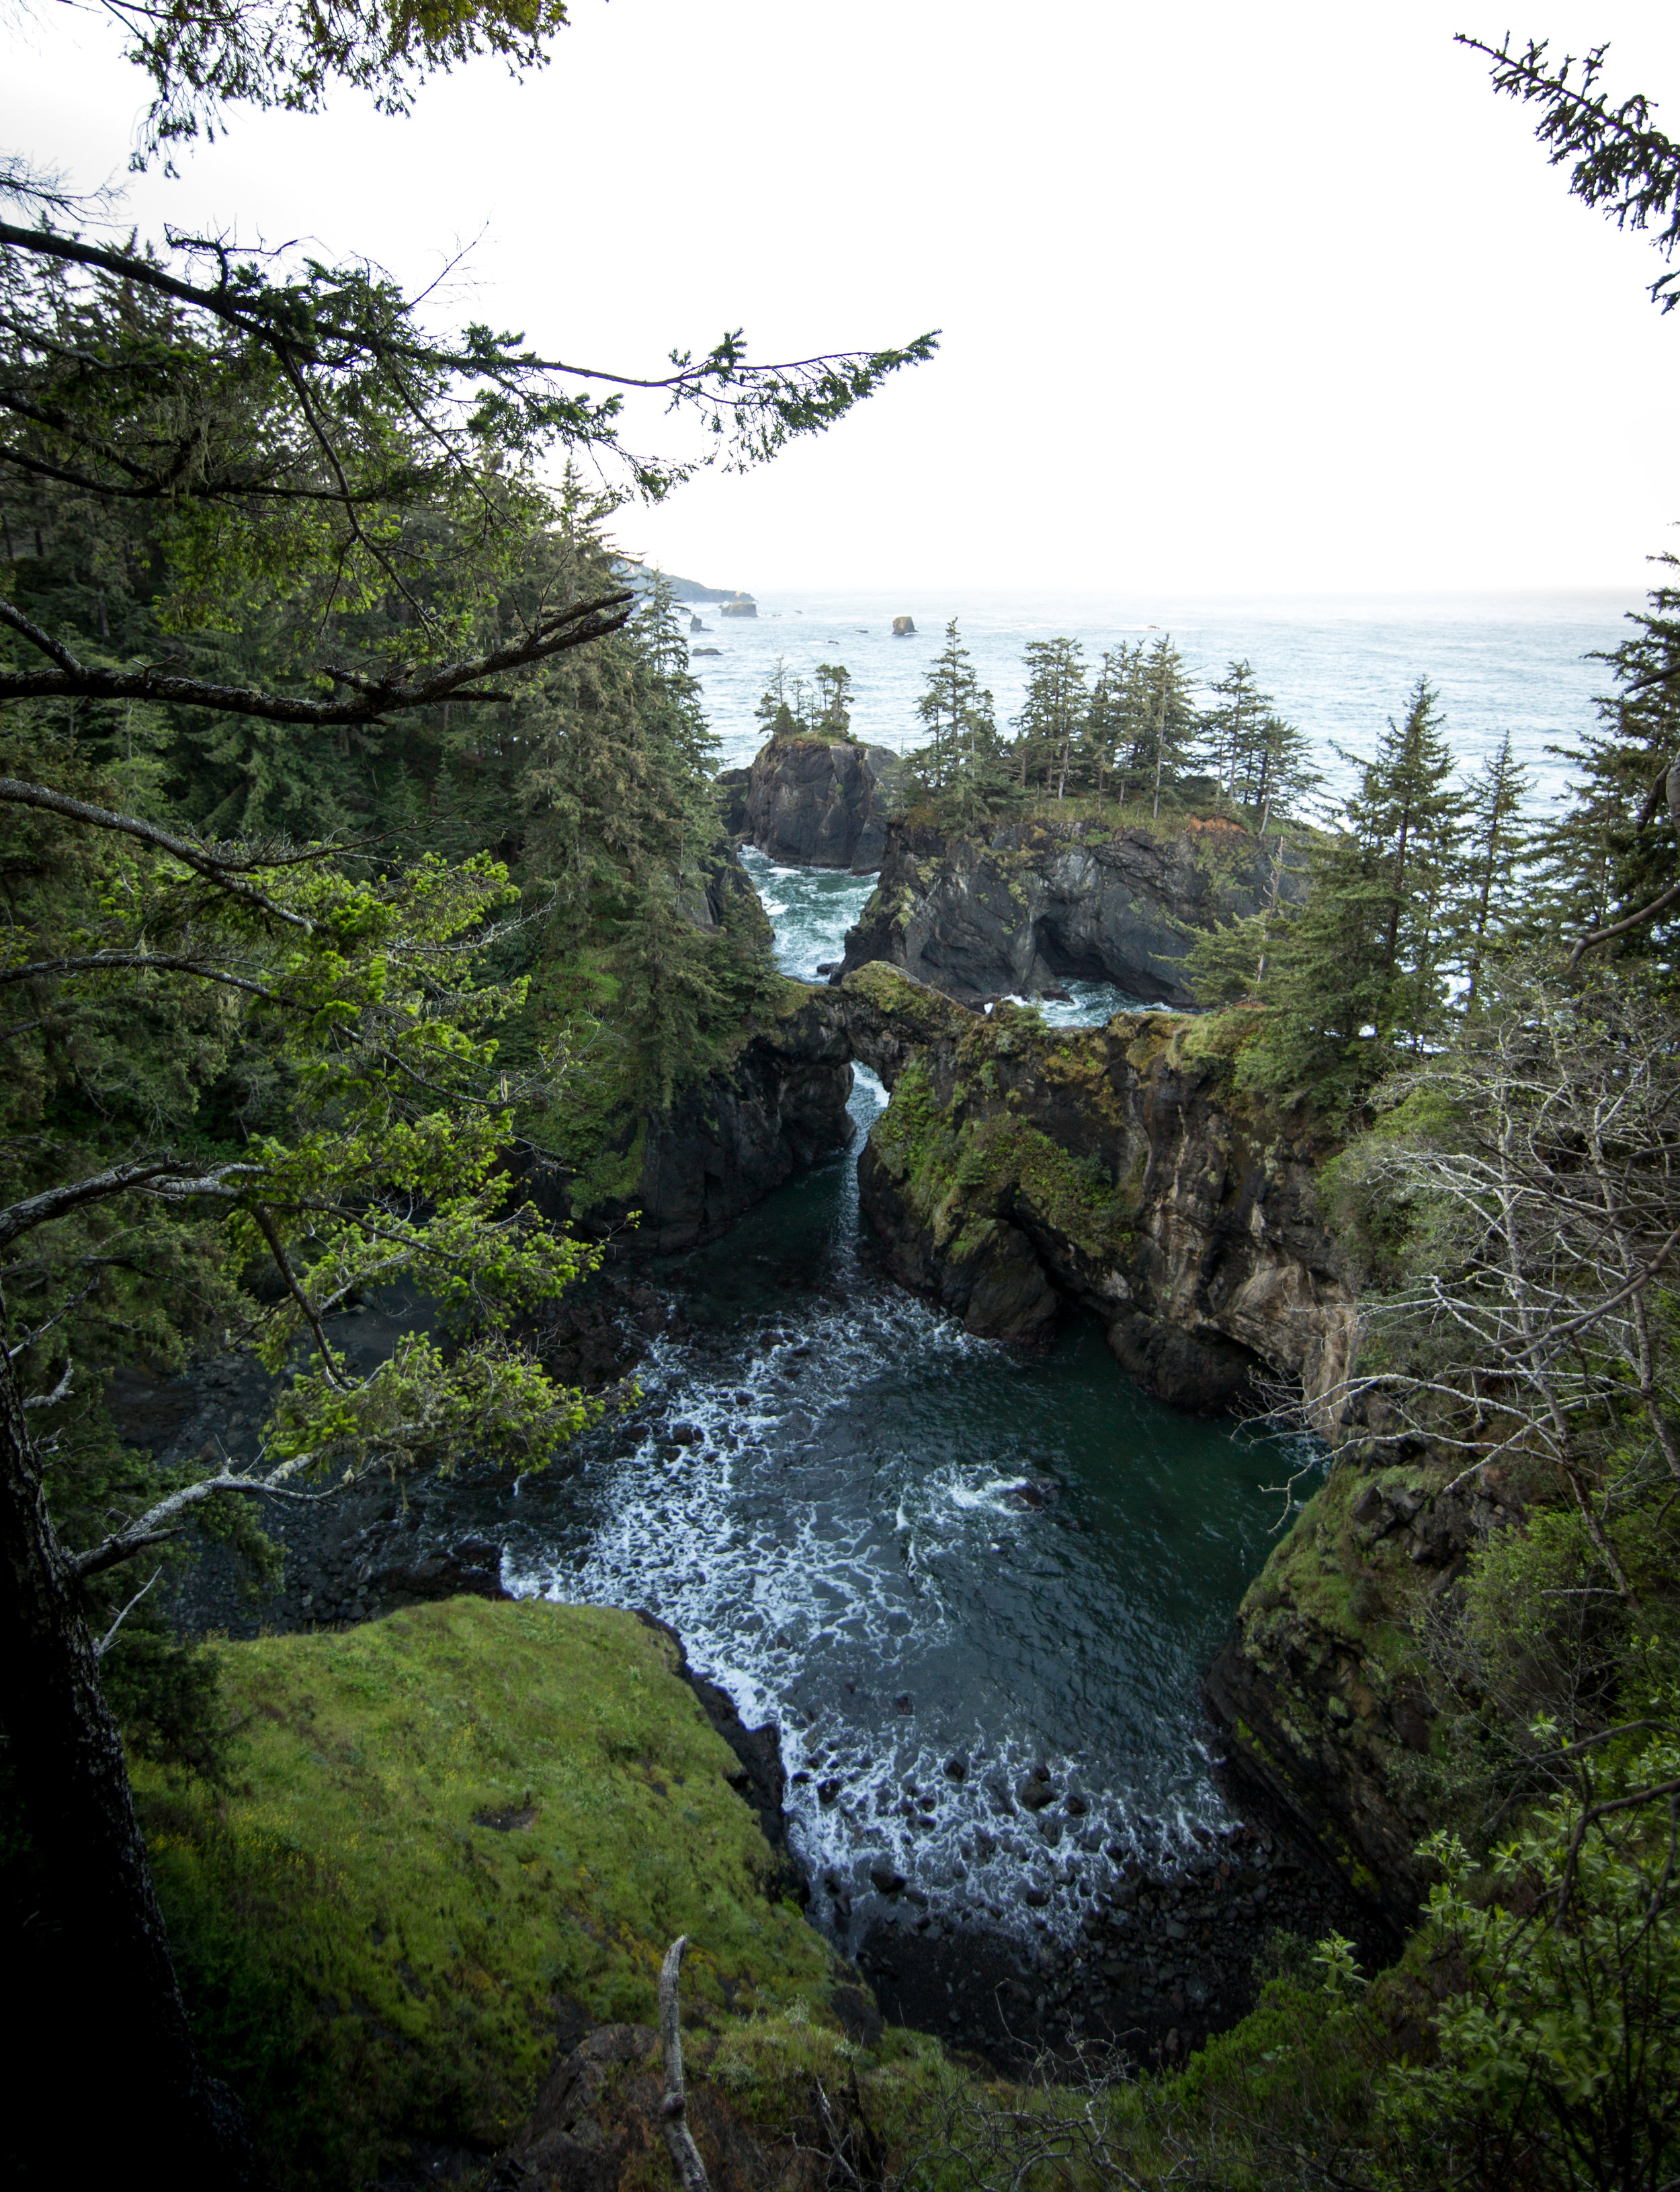 170517_BA Brookings Oregon V228.jpg